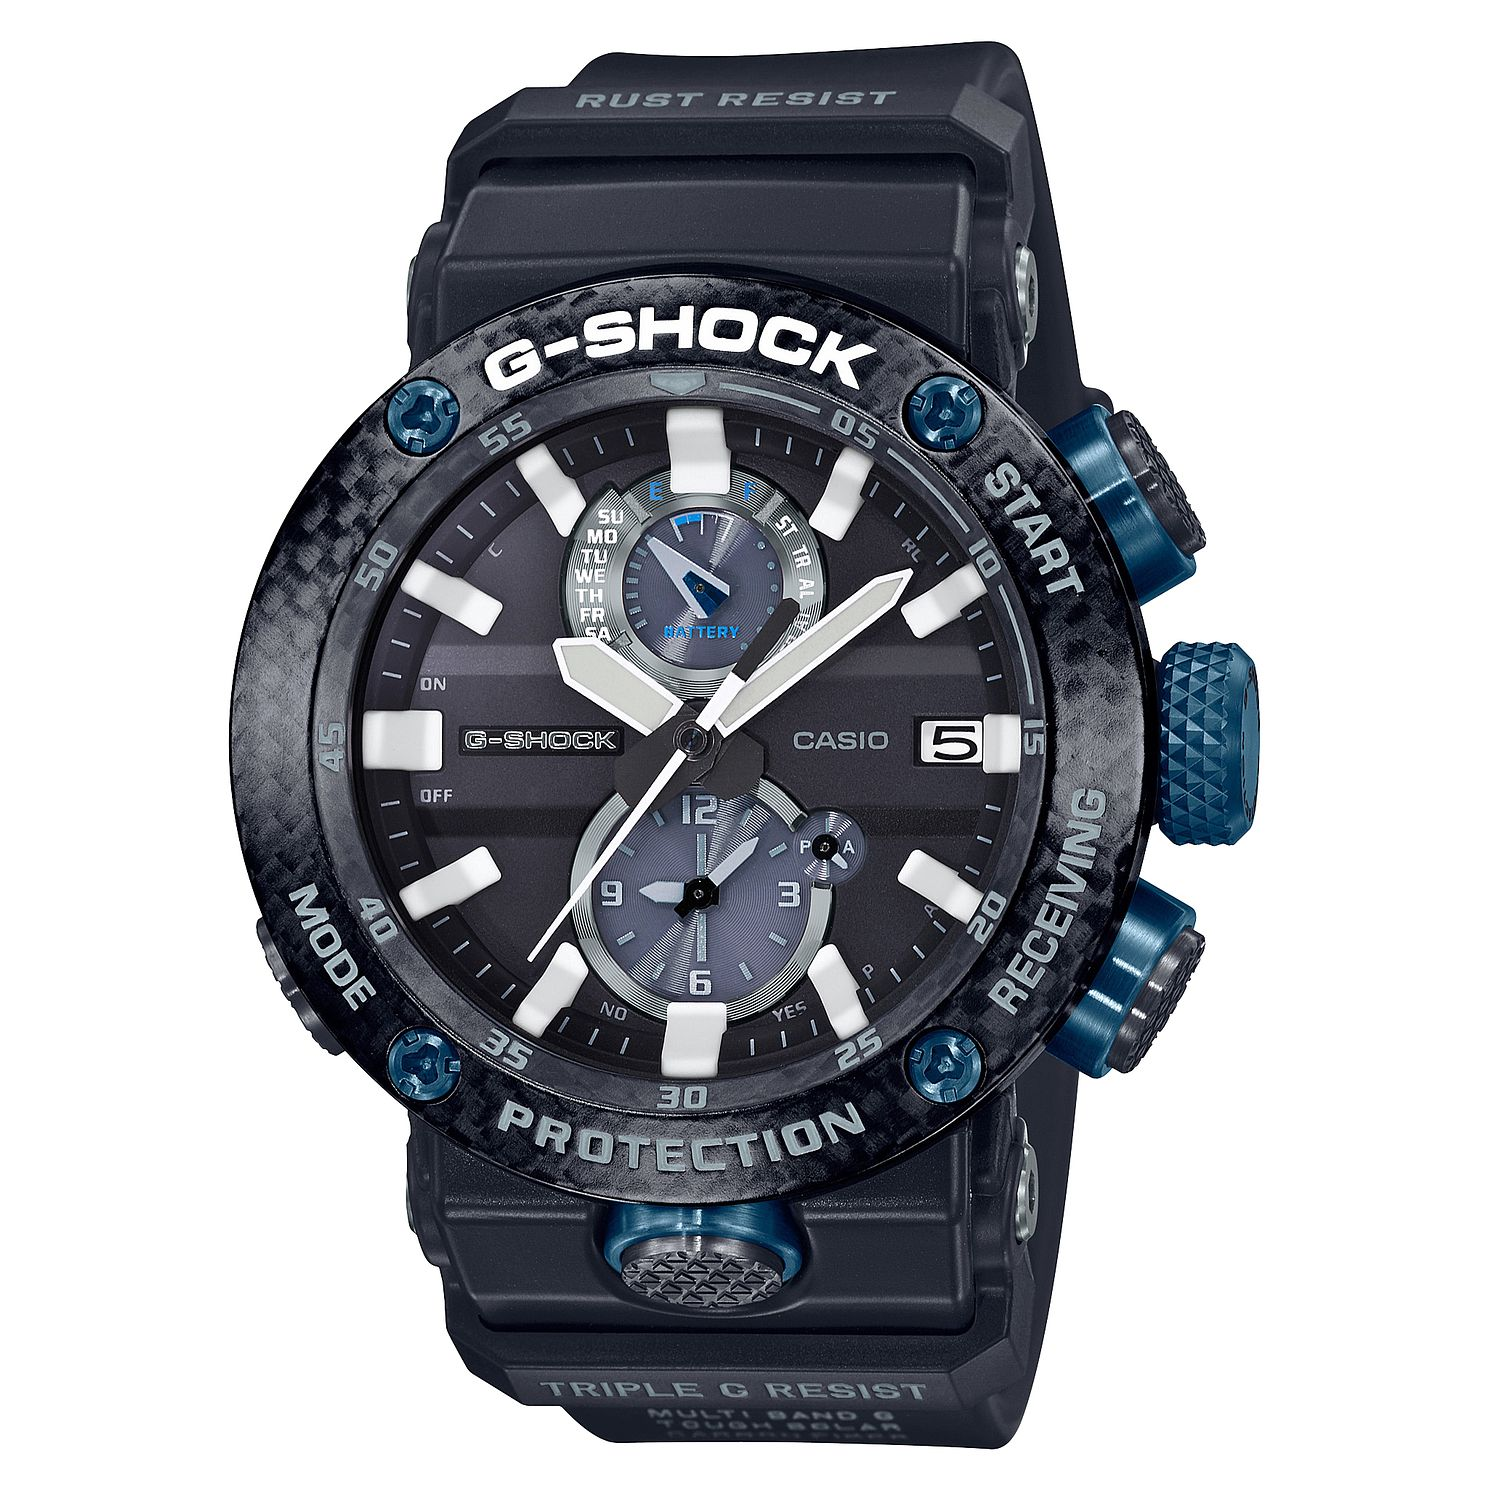 Casio G-Shock Gravitymaster Premium Black Rubber Strap Watch - Product number 2962837